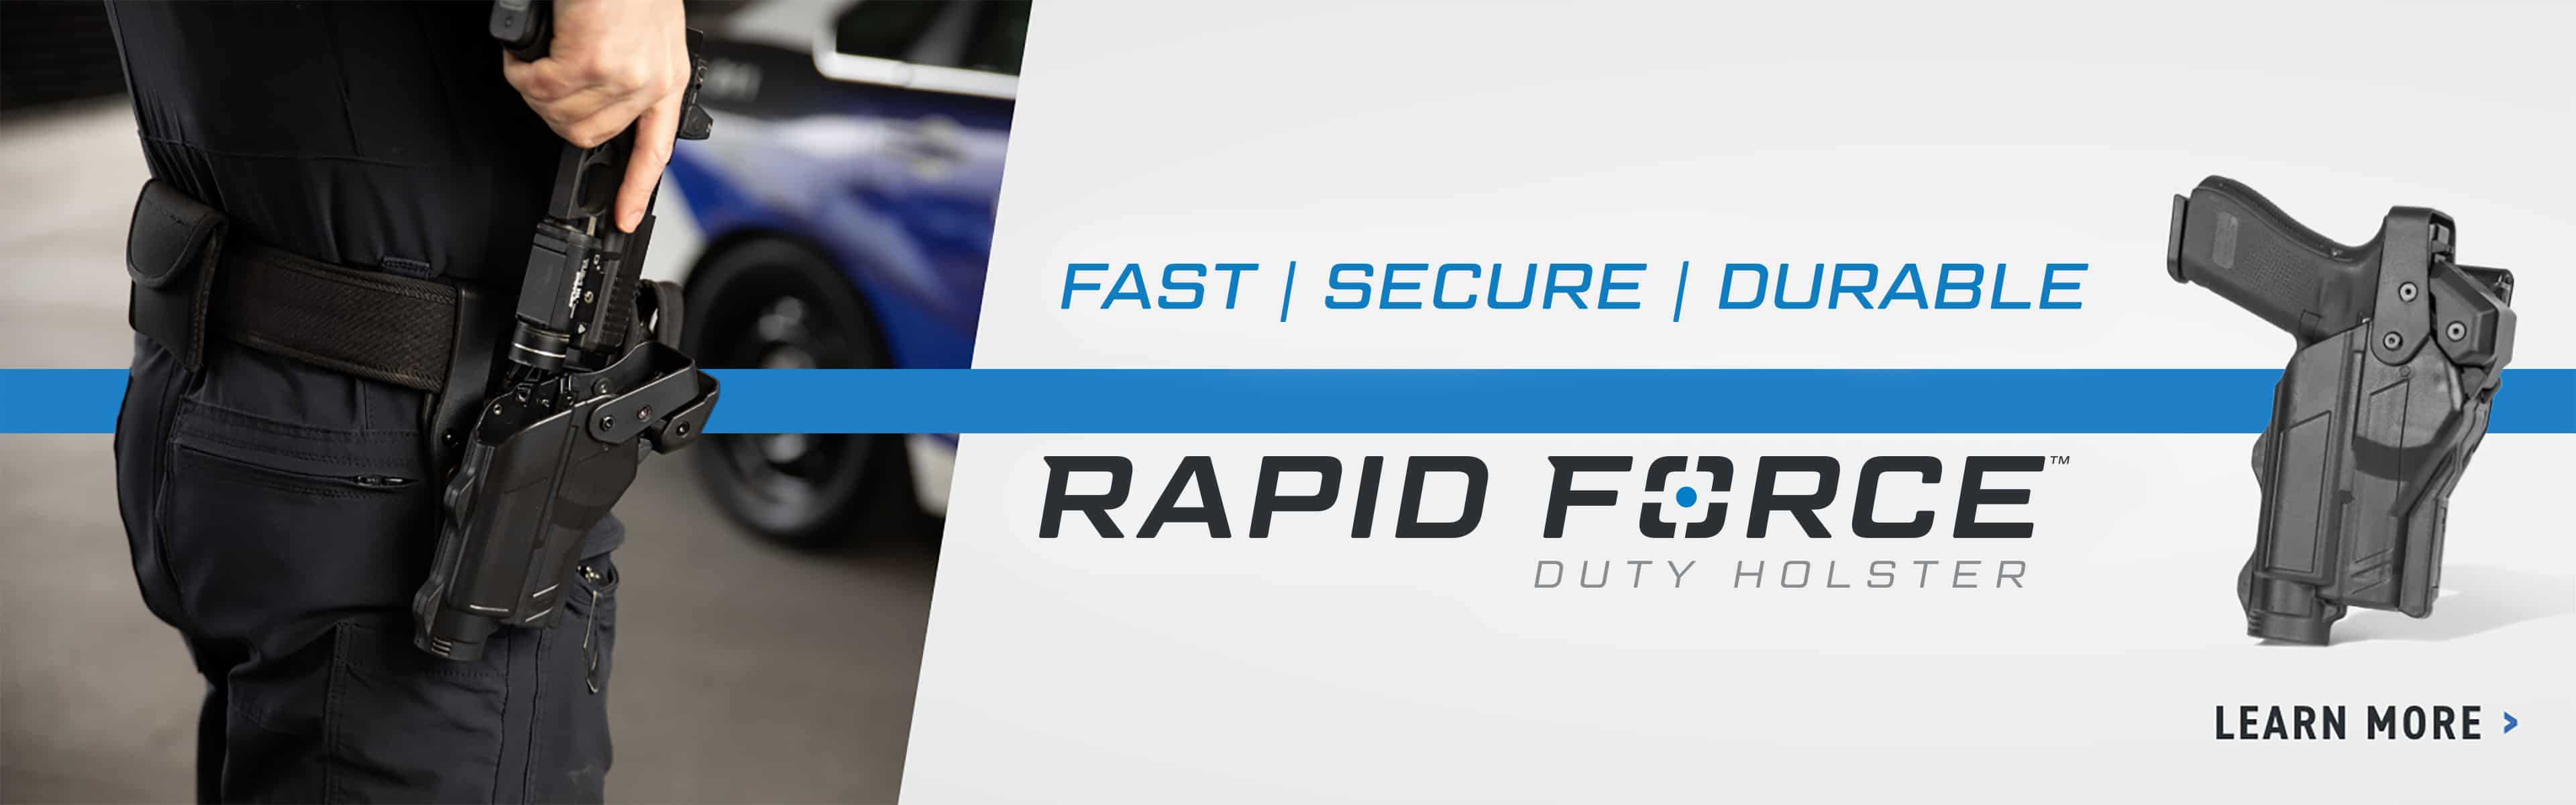 Rapid Force Duty Holster. Fast Secure Durable. Click to Learn more